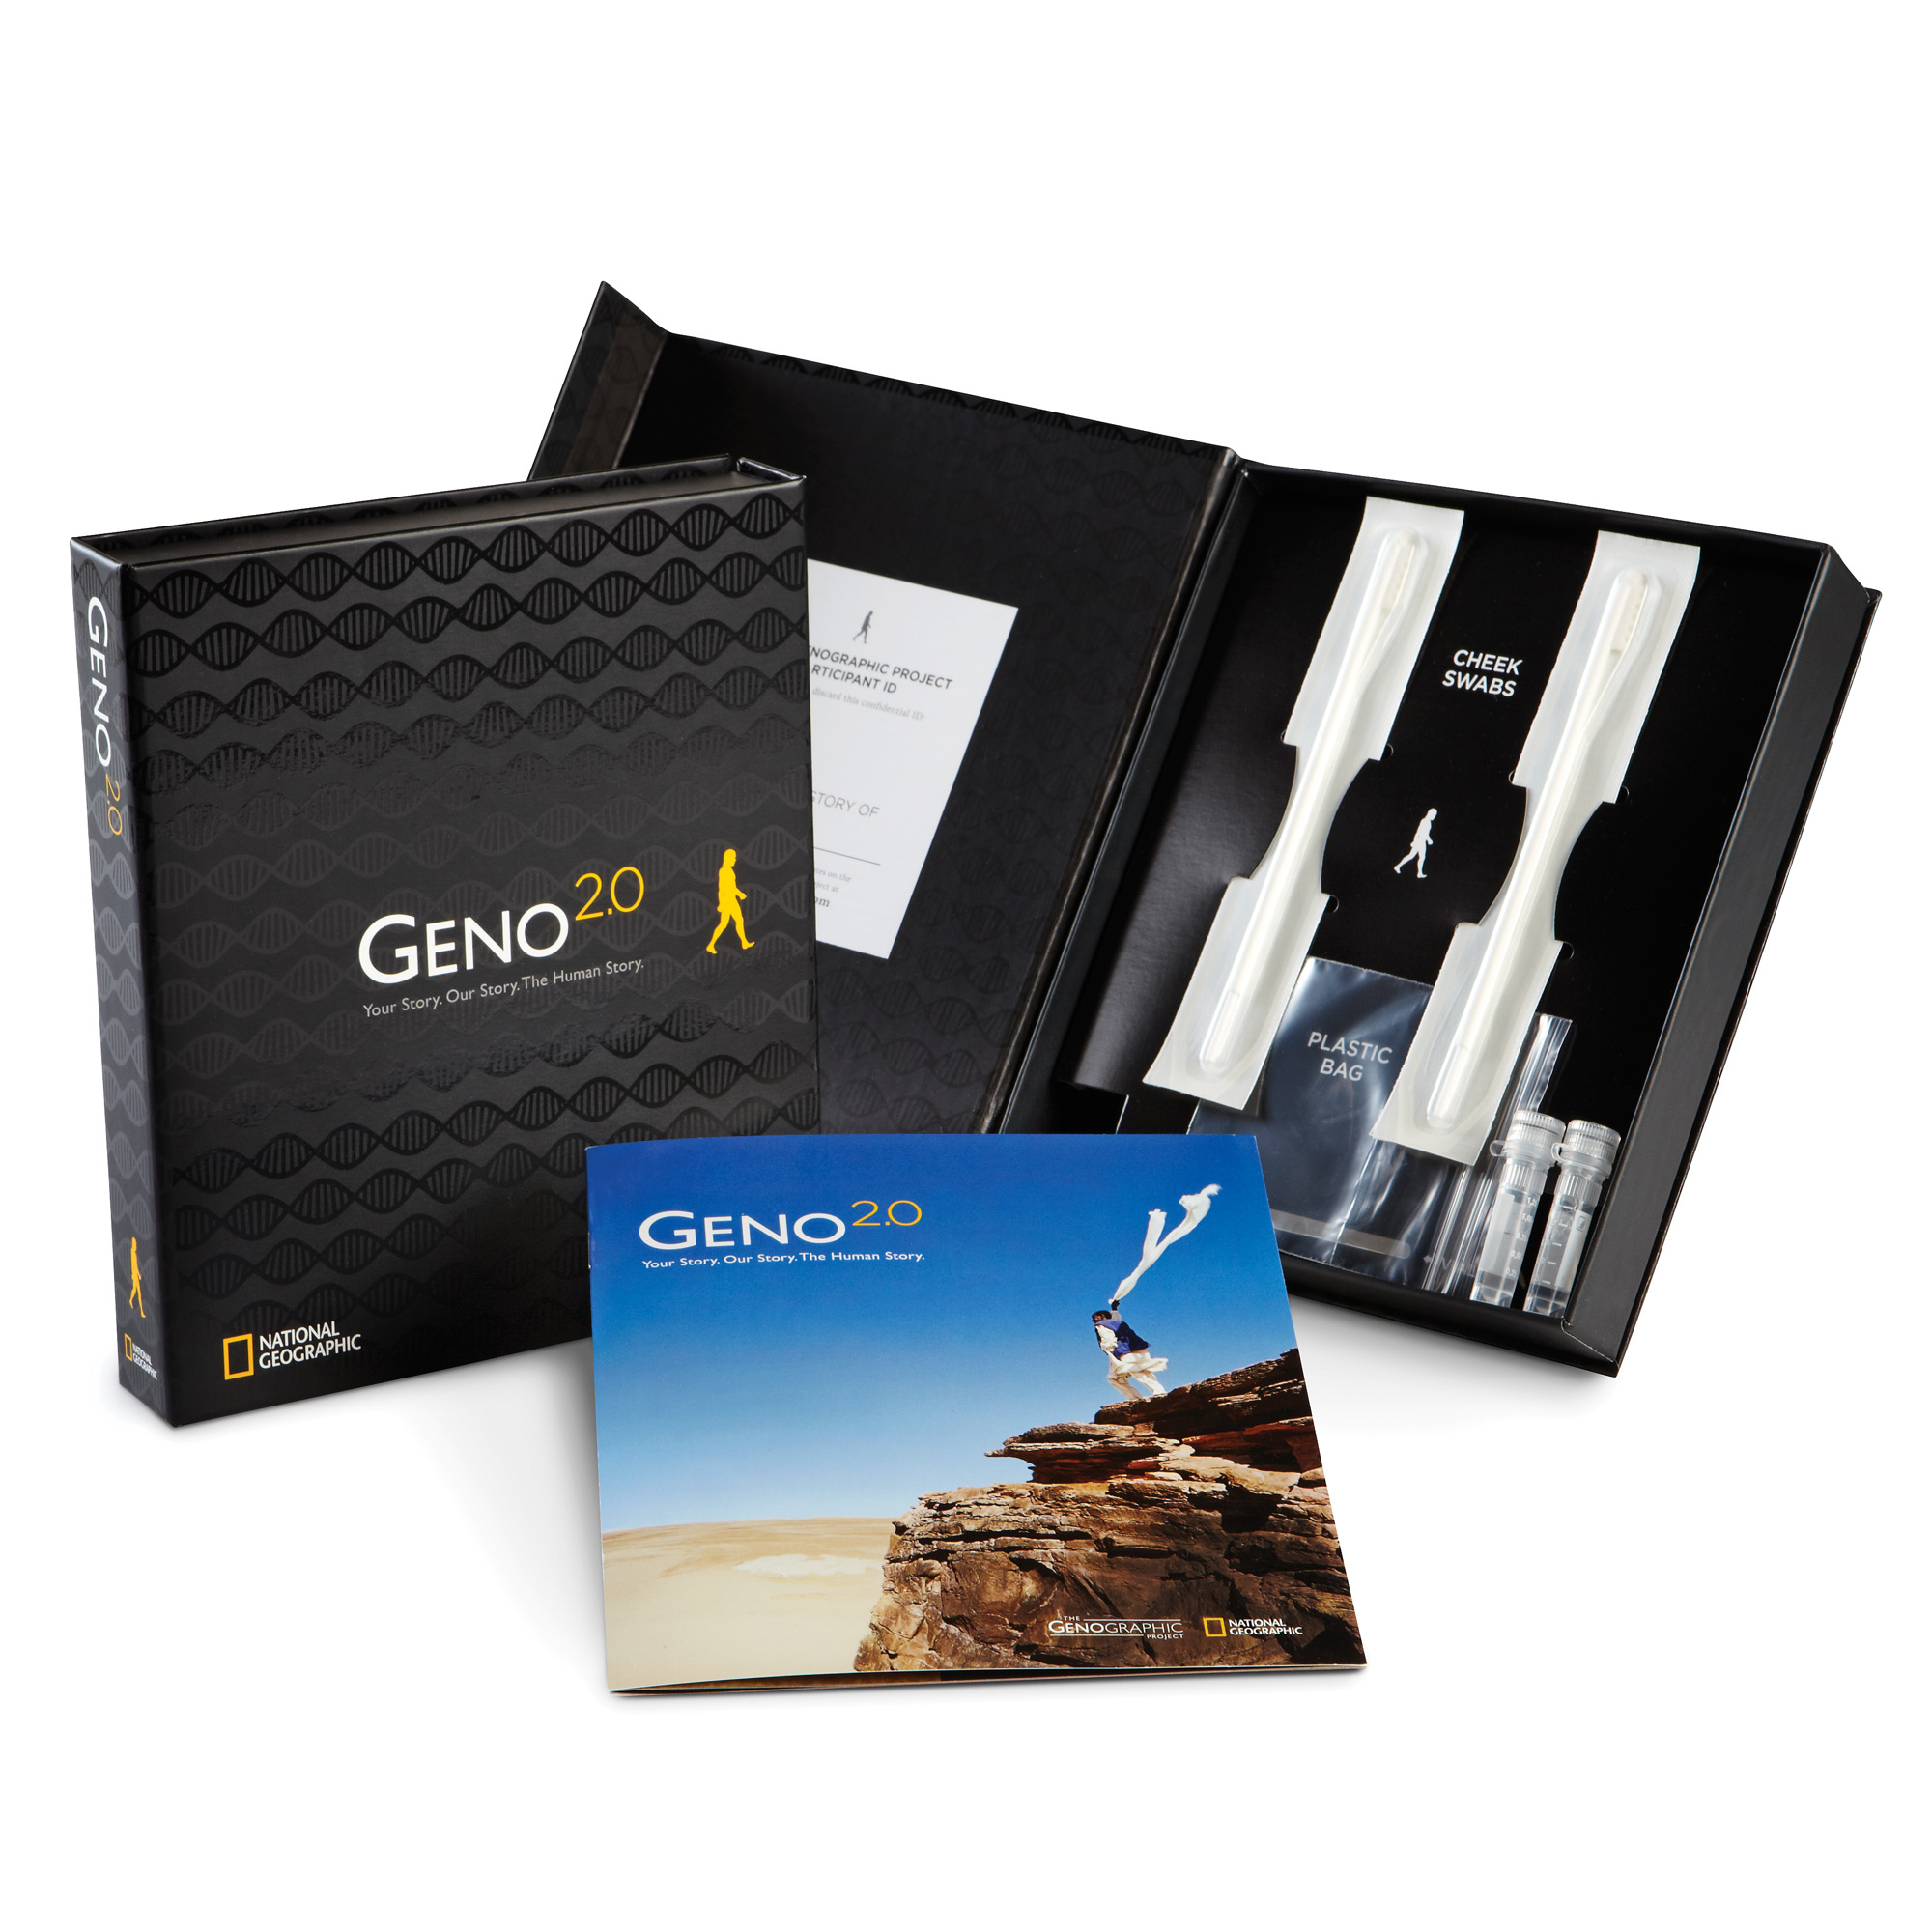 national geographic geno project National geographic genographic 20 citizen scientists can learn more about their genetic makeup and history, helping national geographic researchers in the process.